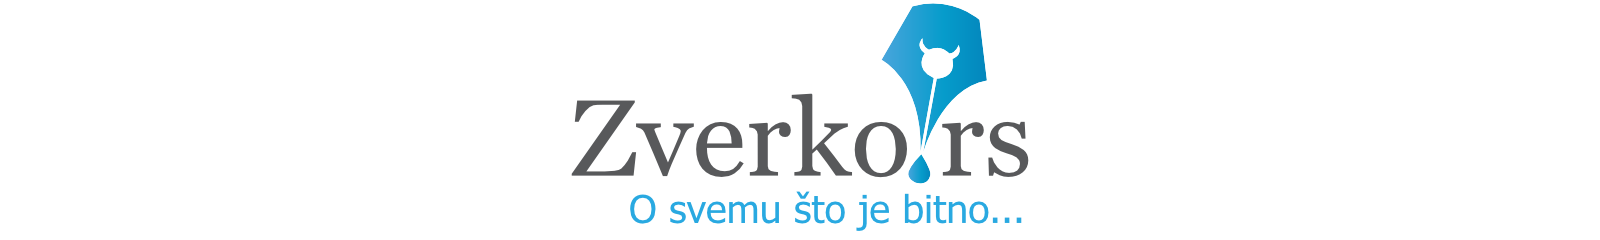 Zverko.rs | Ekonomija | Marketing | Biznis | Tehnologija